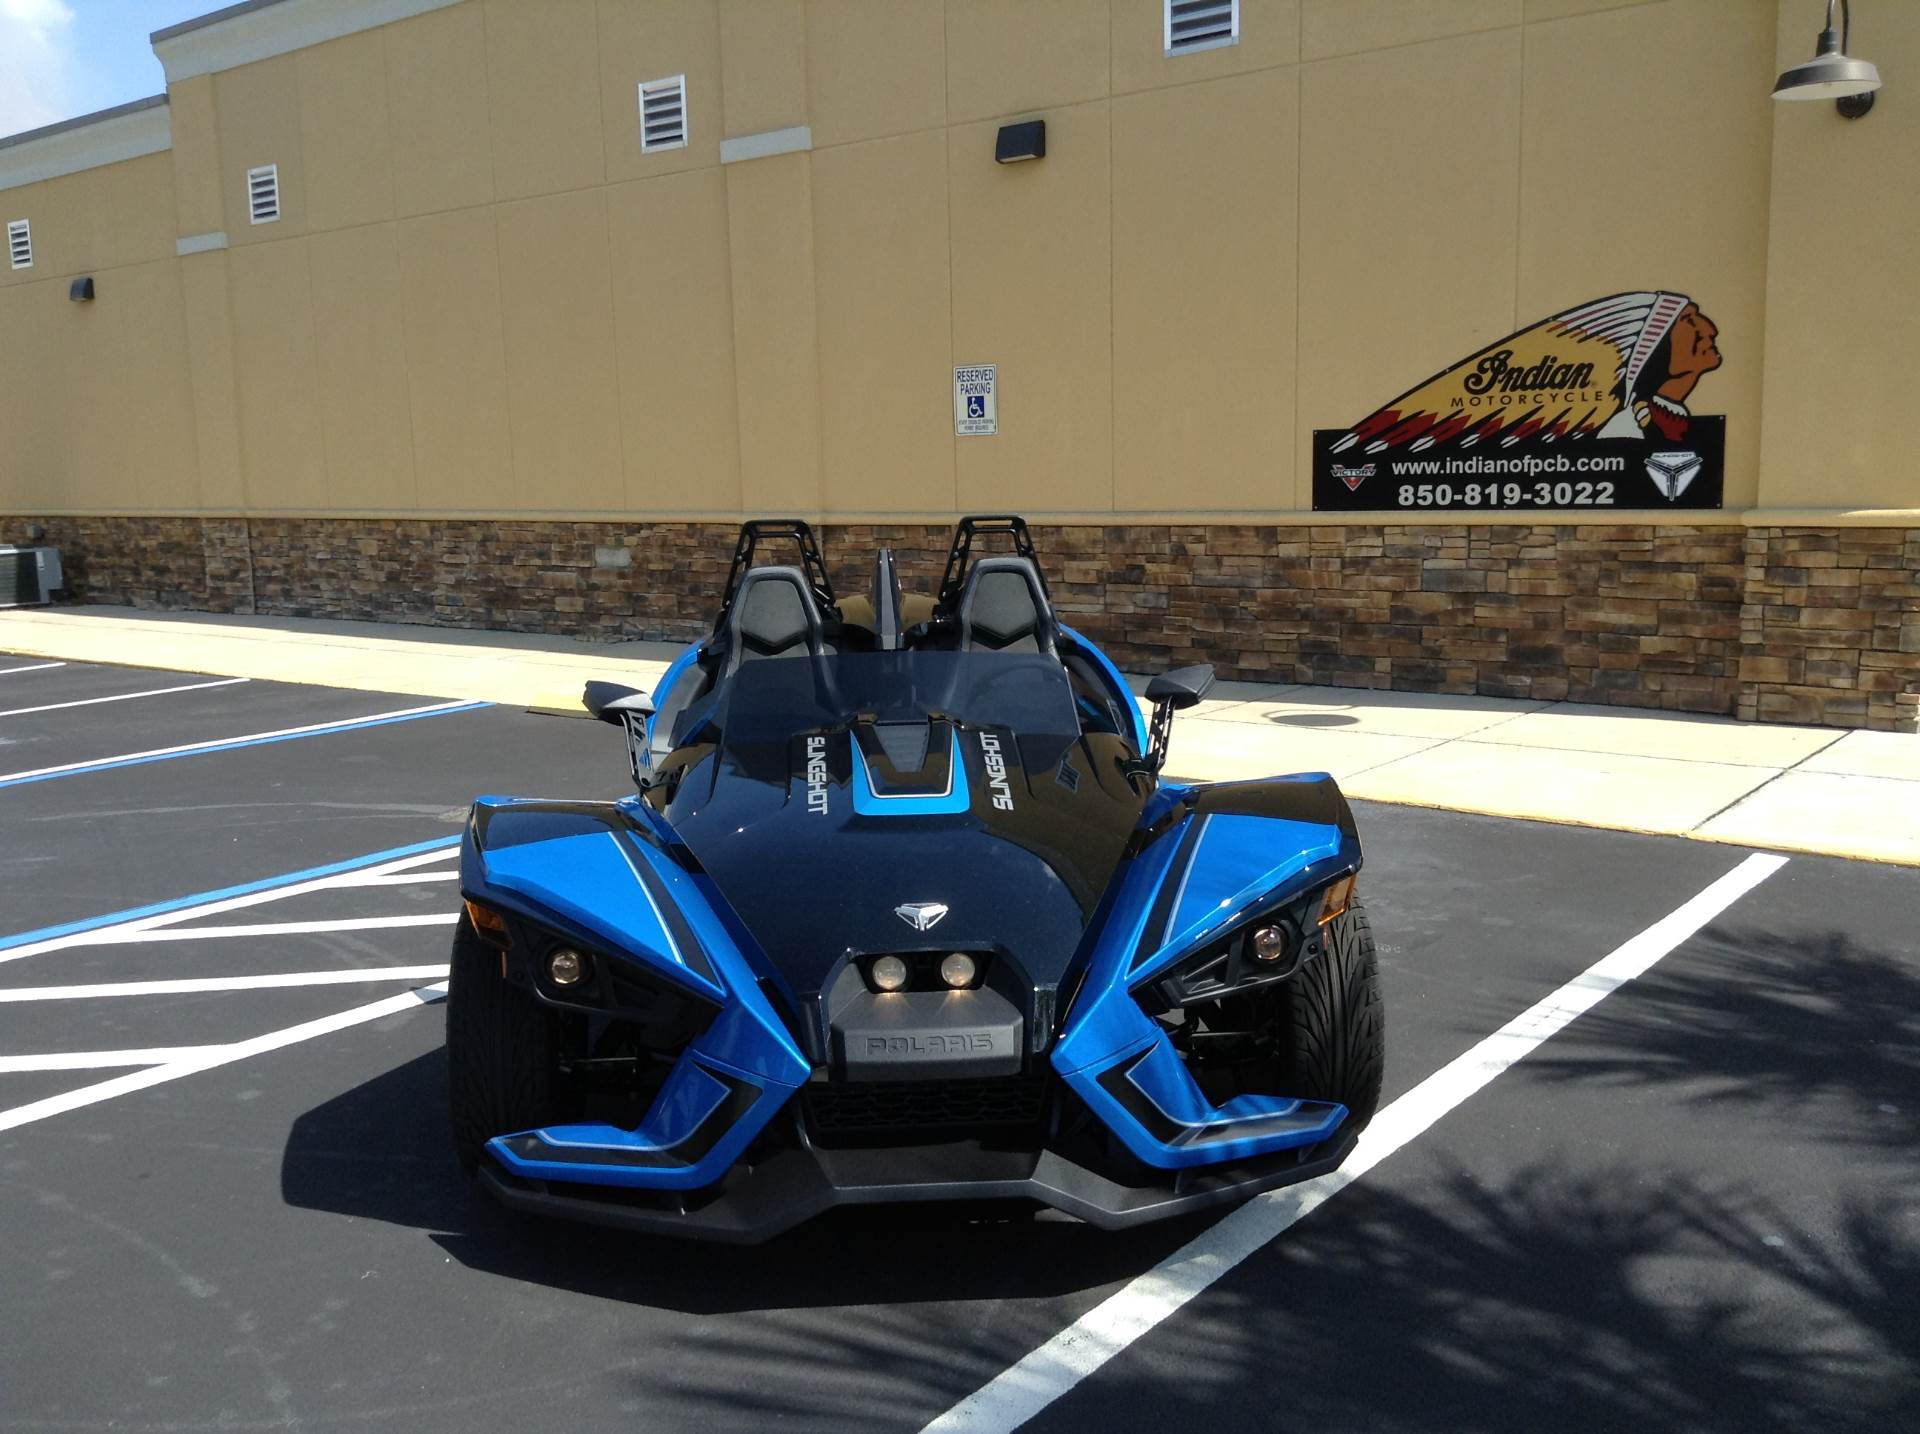 2018 Polaris SLINGSHOT SLR in Panama City Beach, Florida